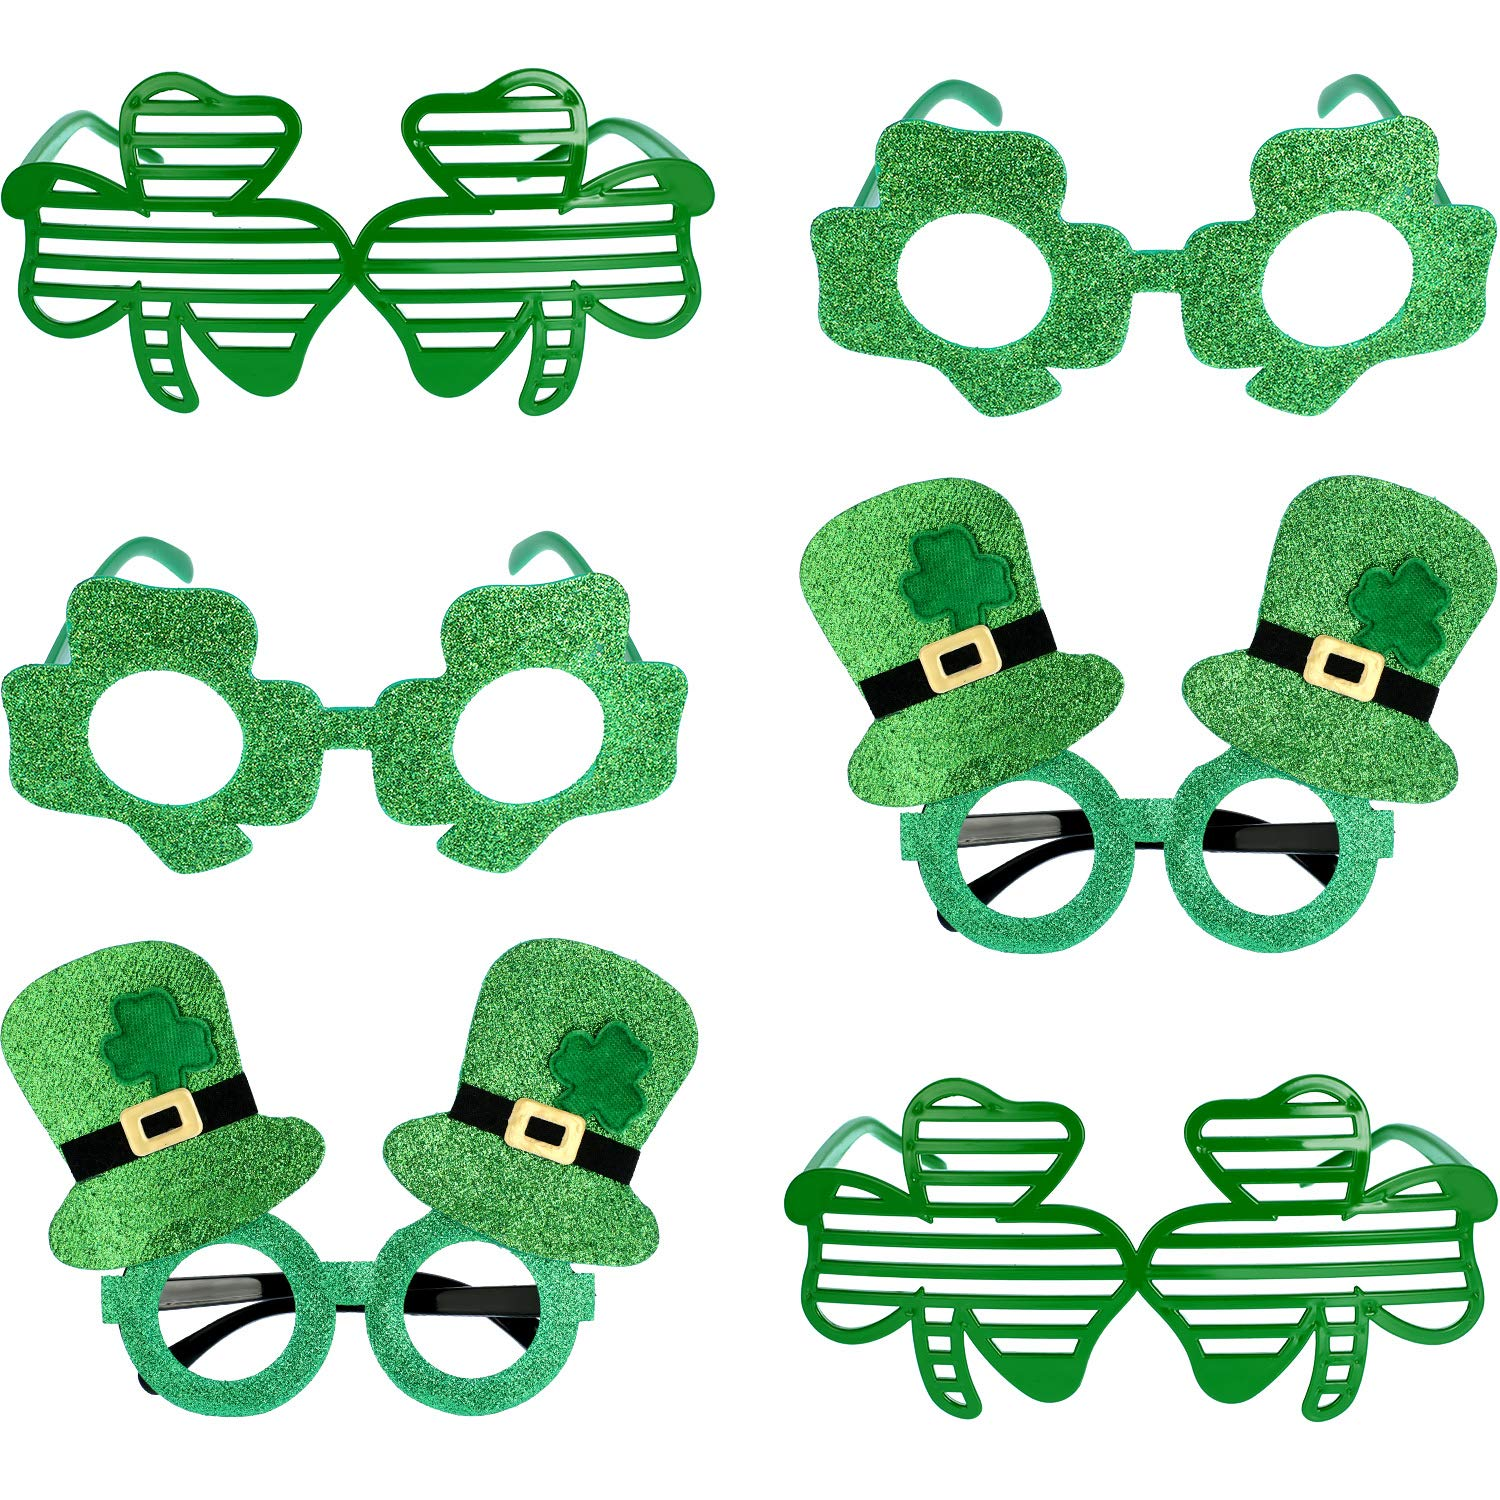 Patricks Day Shamrock Sunglasses Green Shutter Shades Clover Glasses Bulk for Kids Adults Party Favors Accessories Gift Boutique 24 St